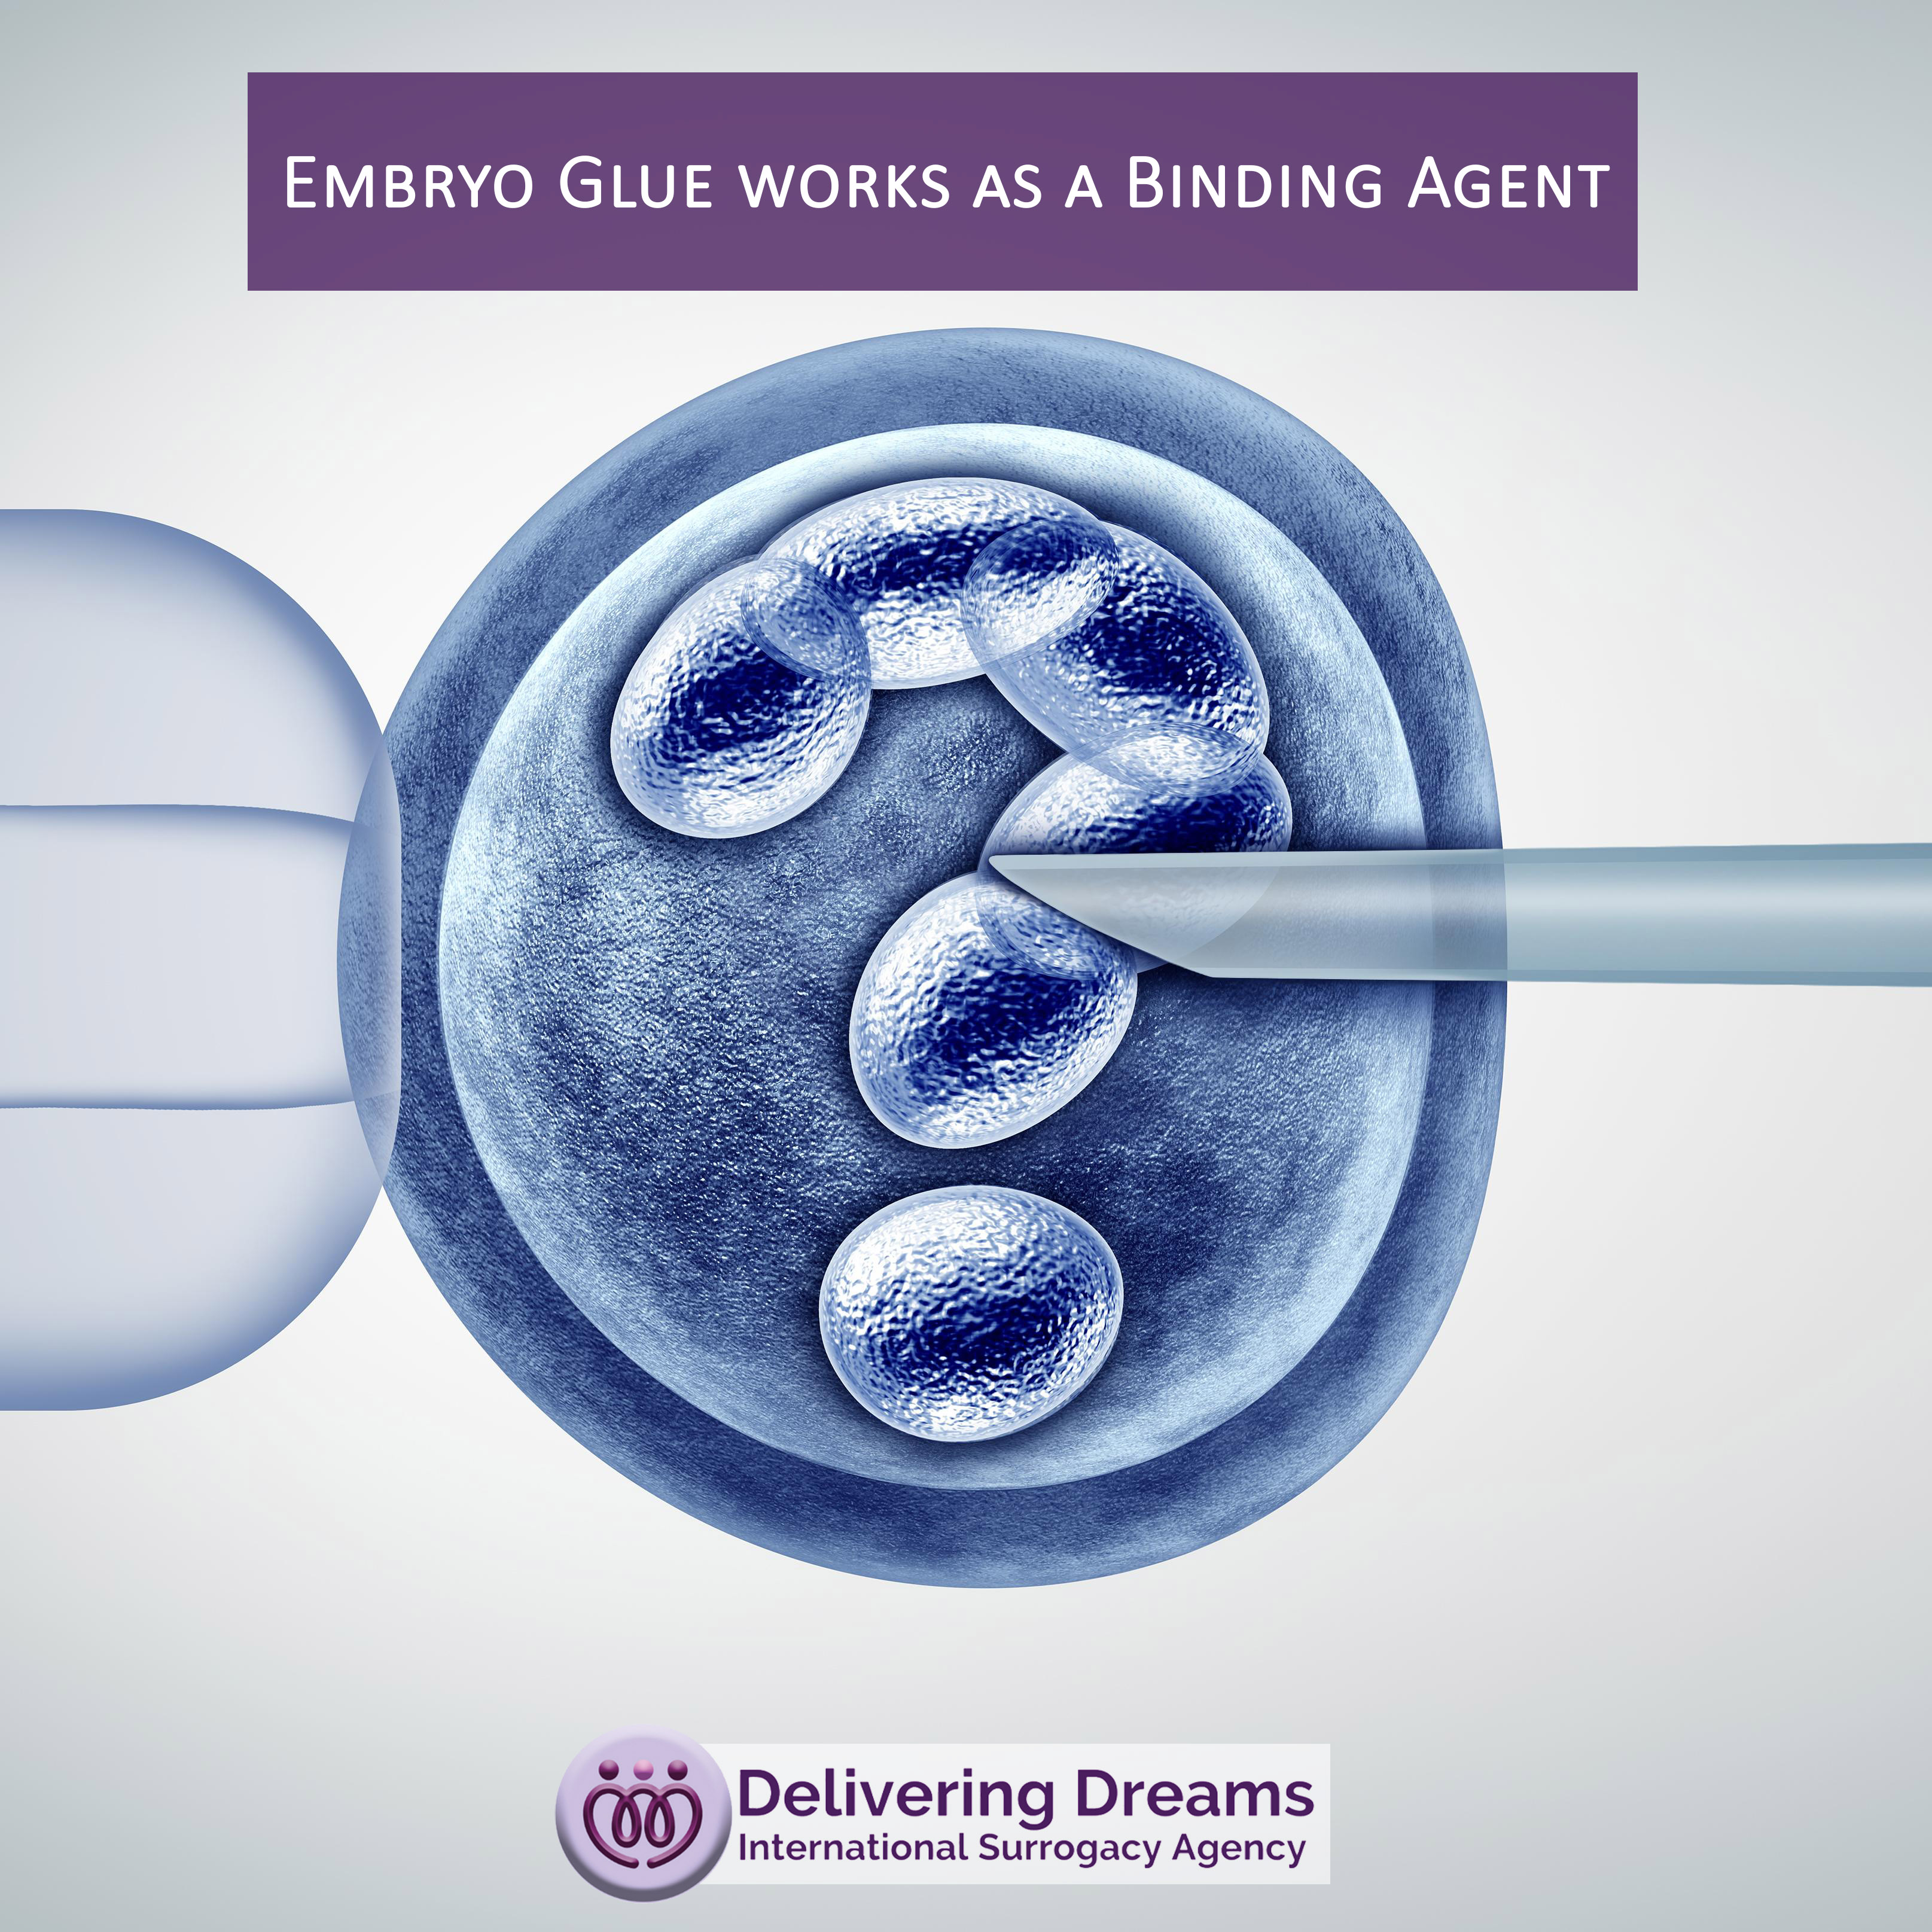 Embryo Glue works as a Binding Agent